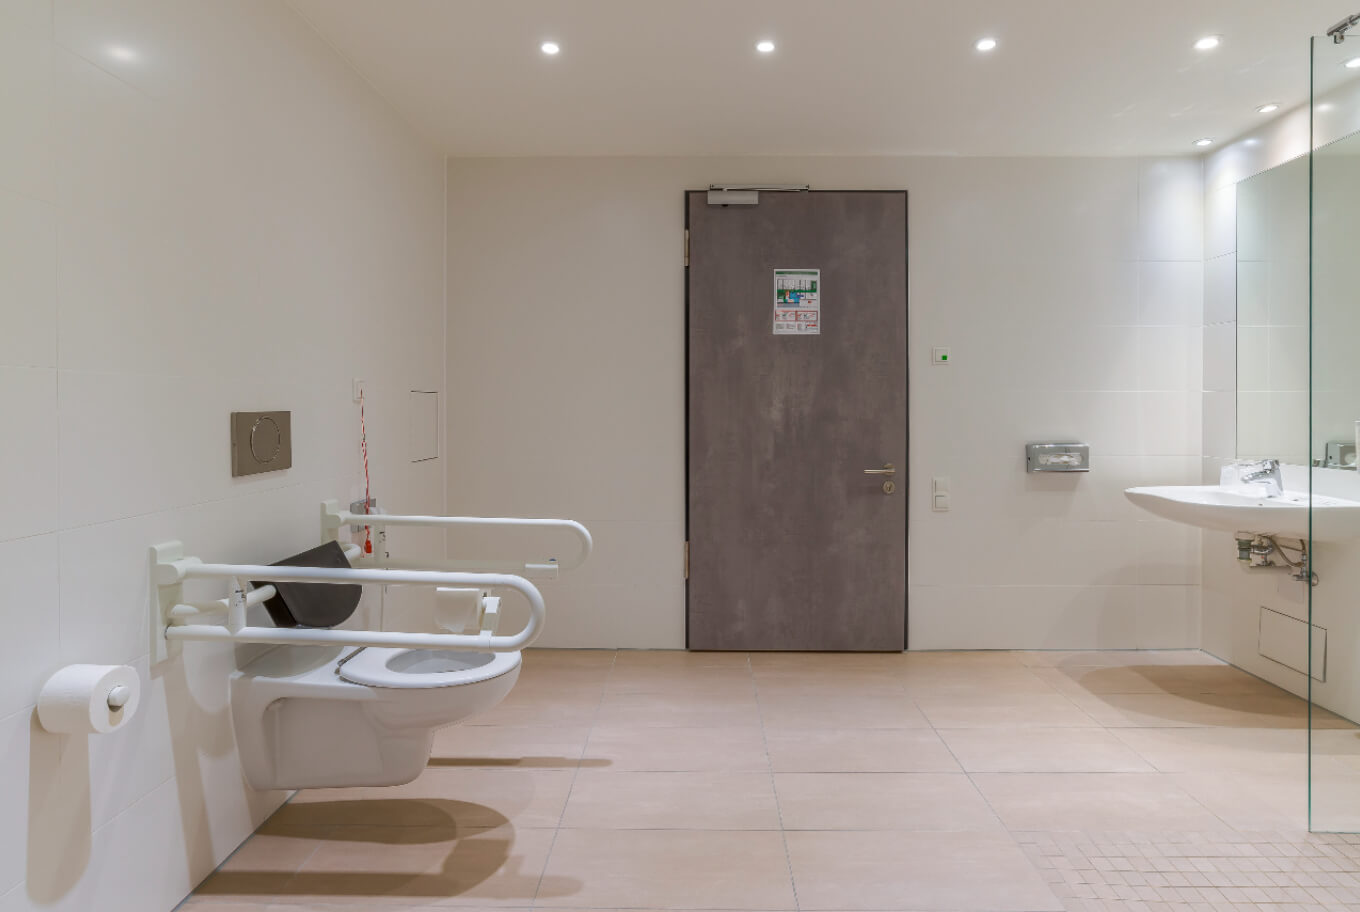 Handicapped accessible bathroom at Arthotel ANA Diva Munich